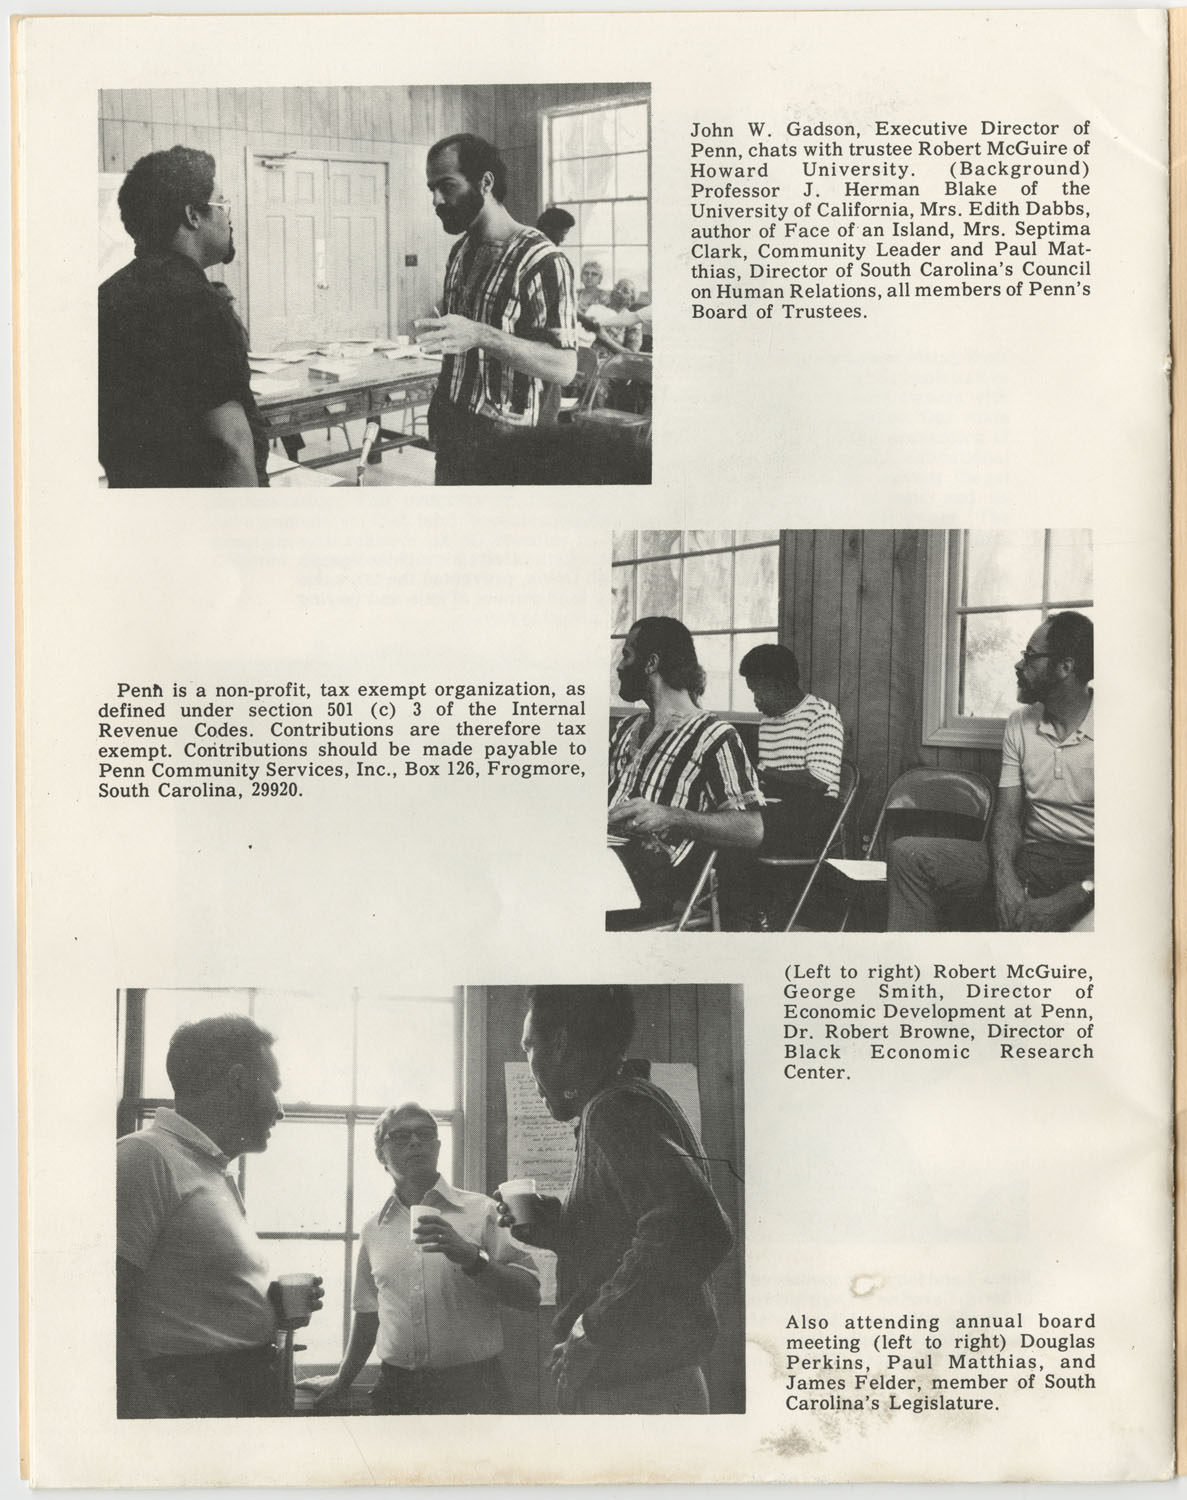 Penn Community Services, Inc., October 1972, Page 17